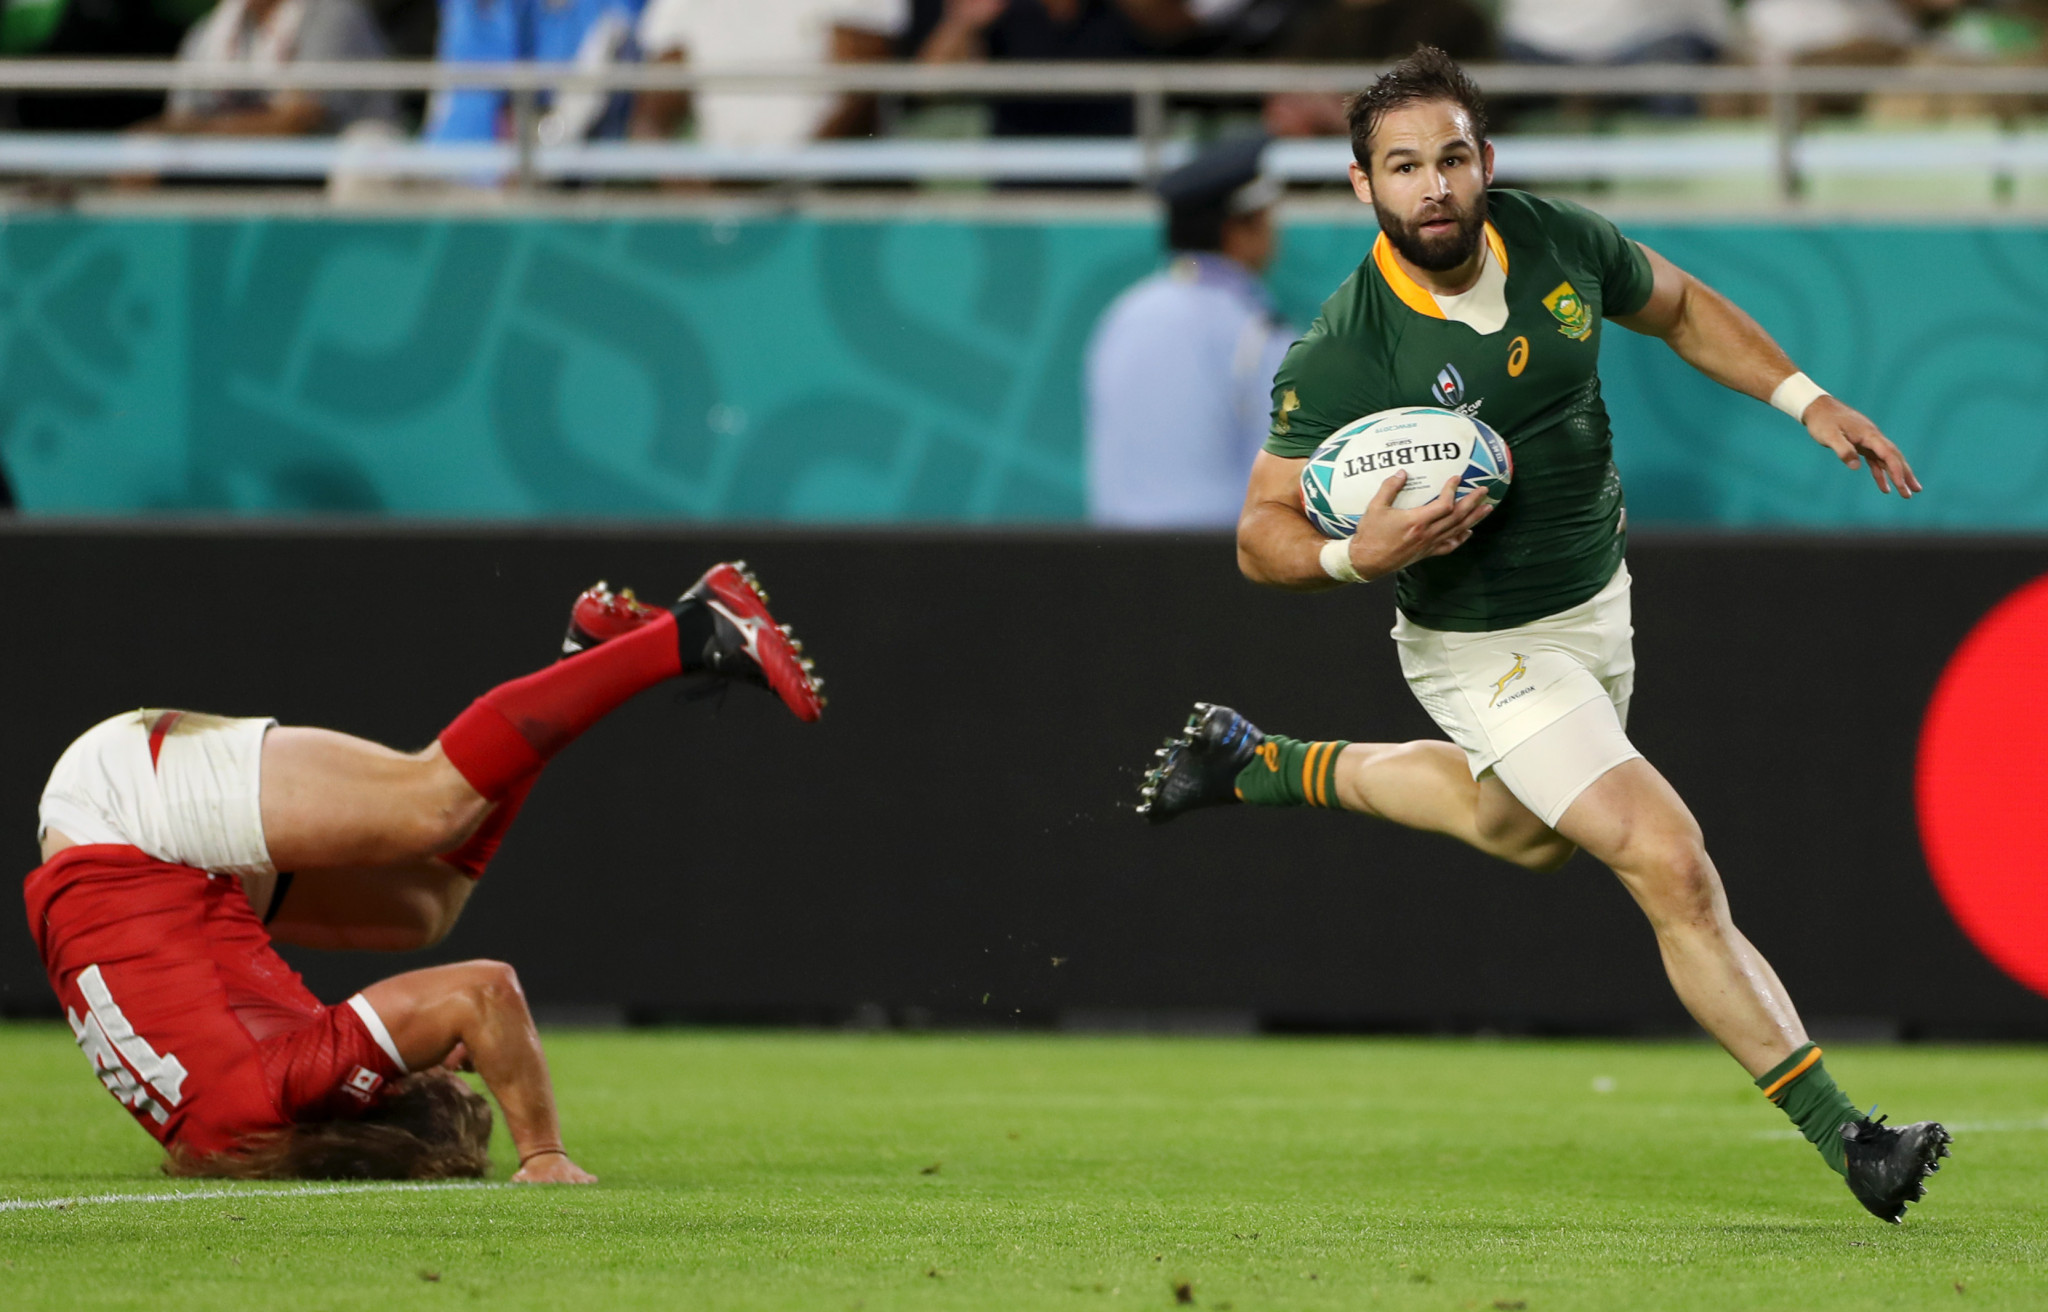 He's not even a starting halfback, but the brilliant Cobus Reinach still ran in a hat-trick of tries ©Getty Images